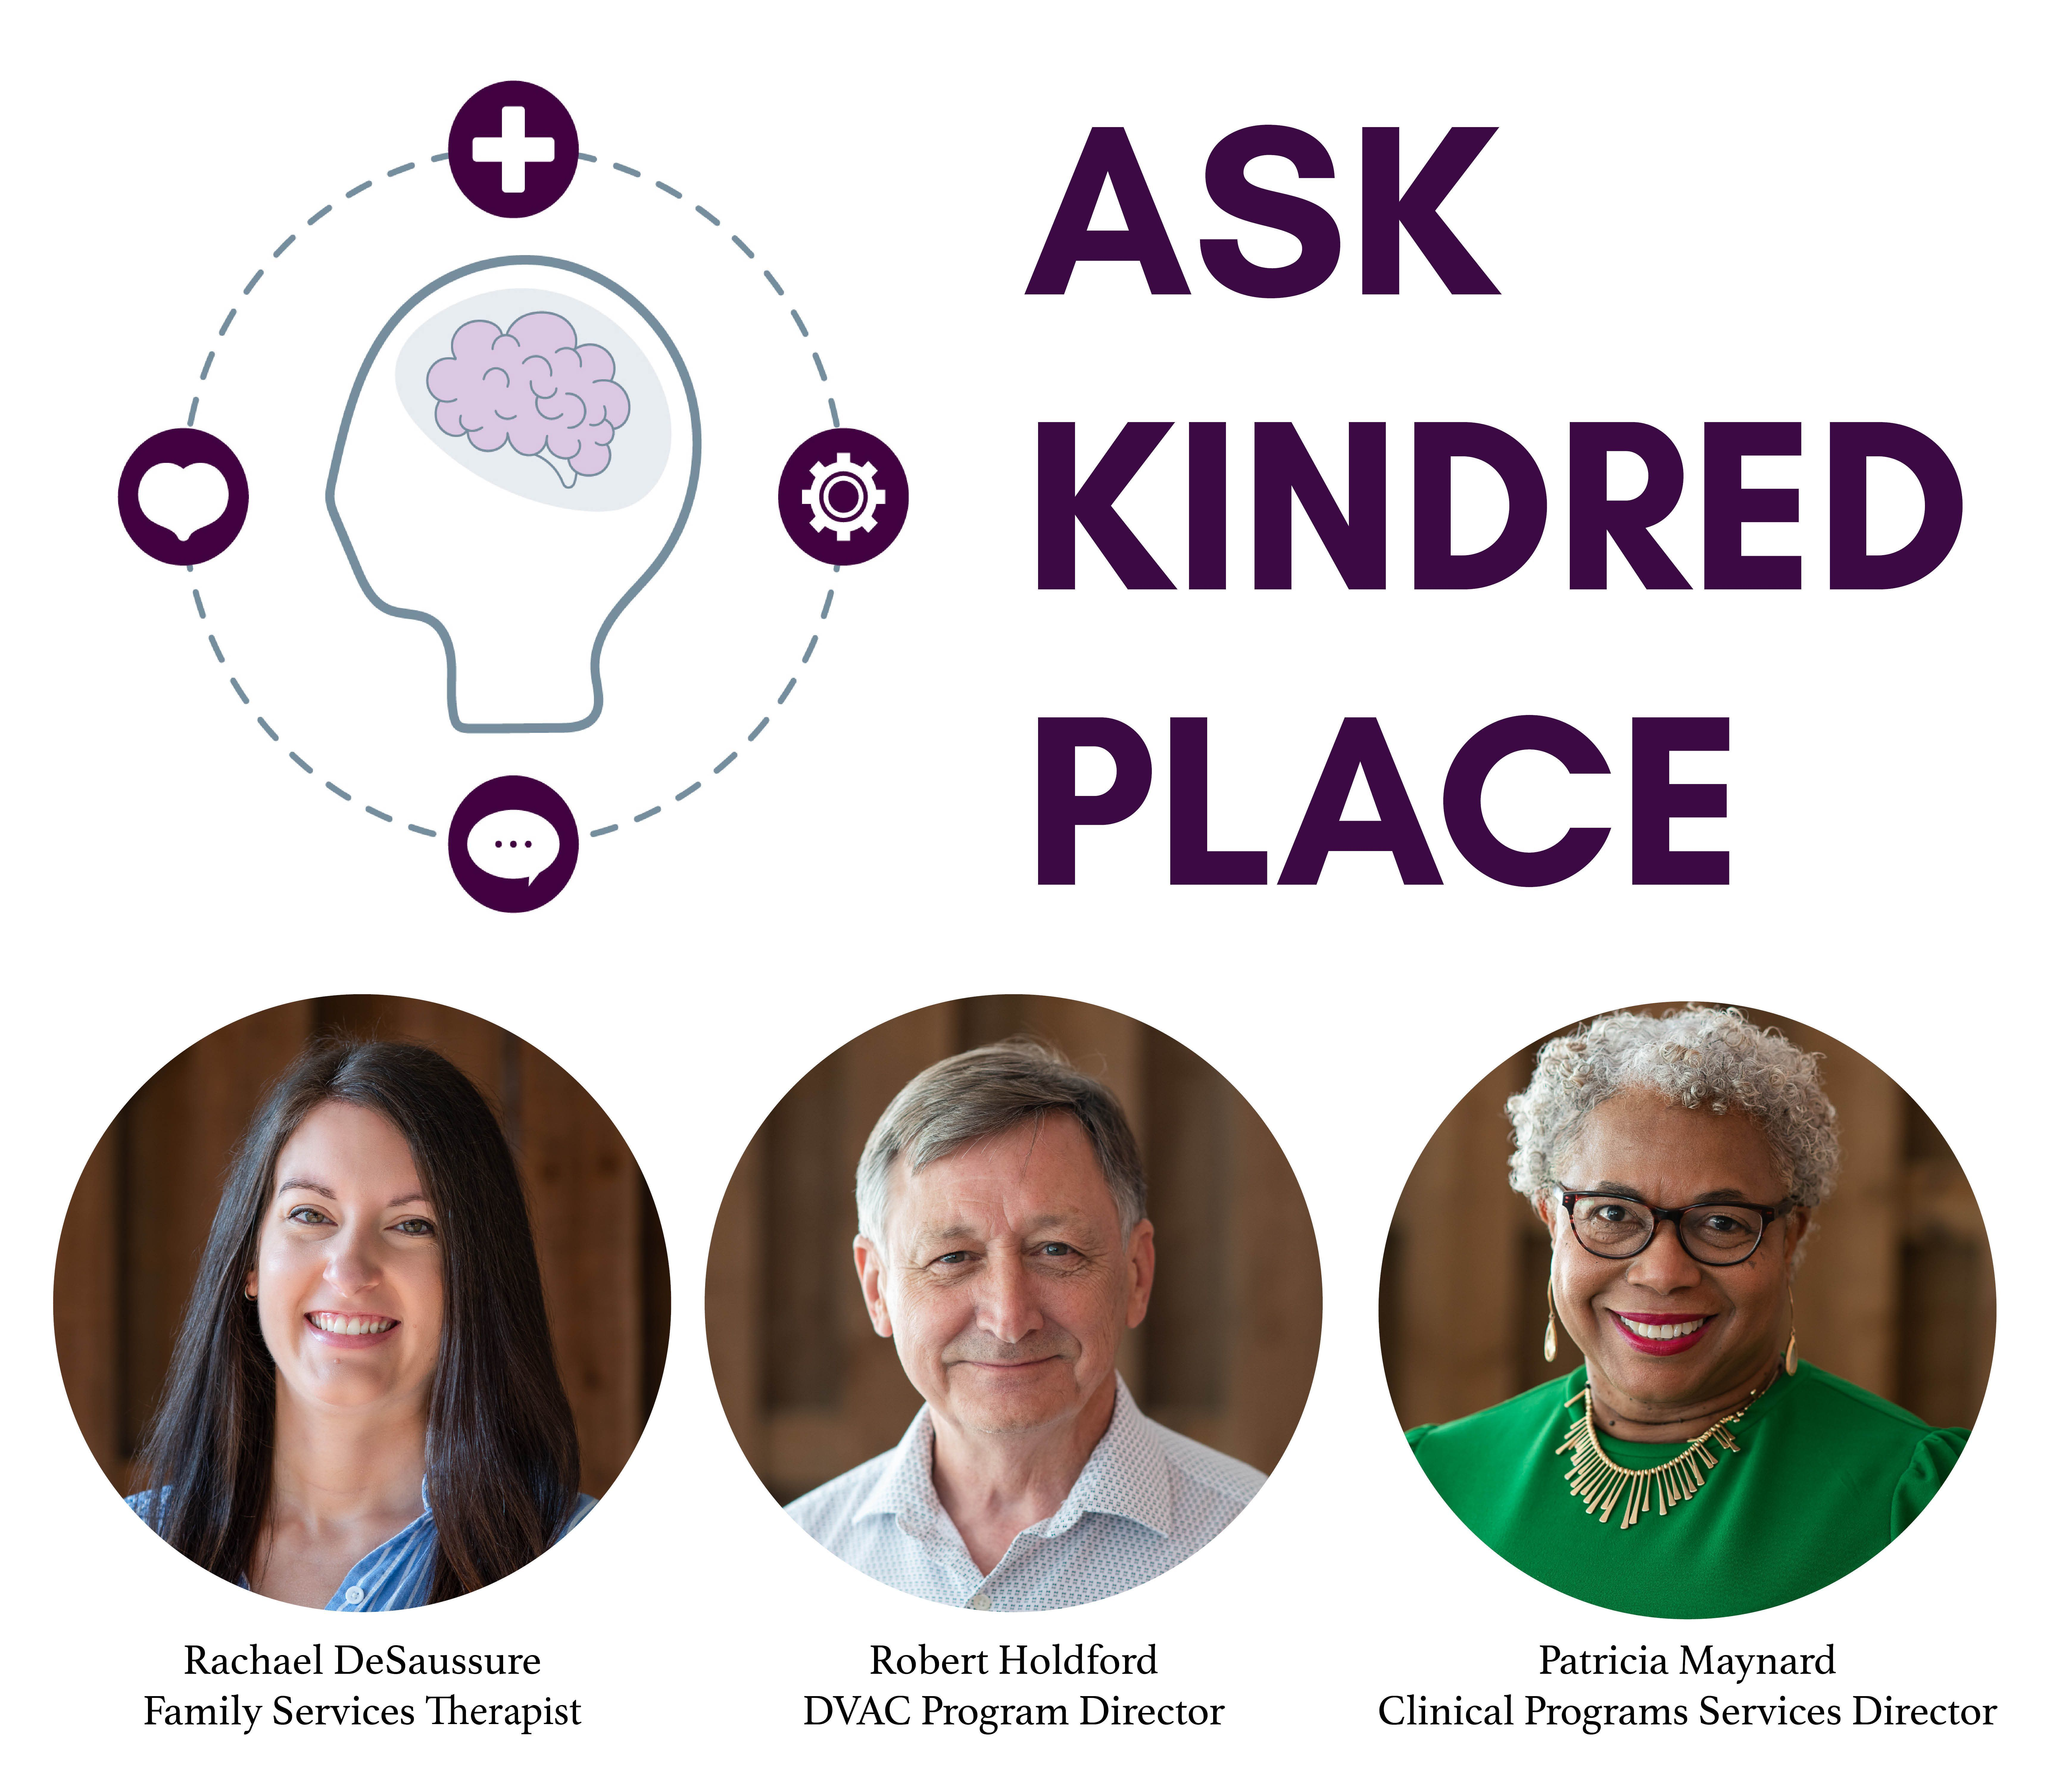 Ask Kindred Place - How can I cope with moving from an active life to a less active life? And how can my family members help?